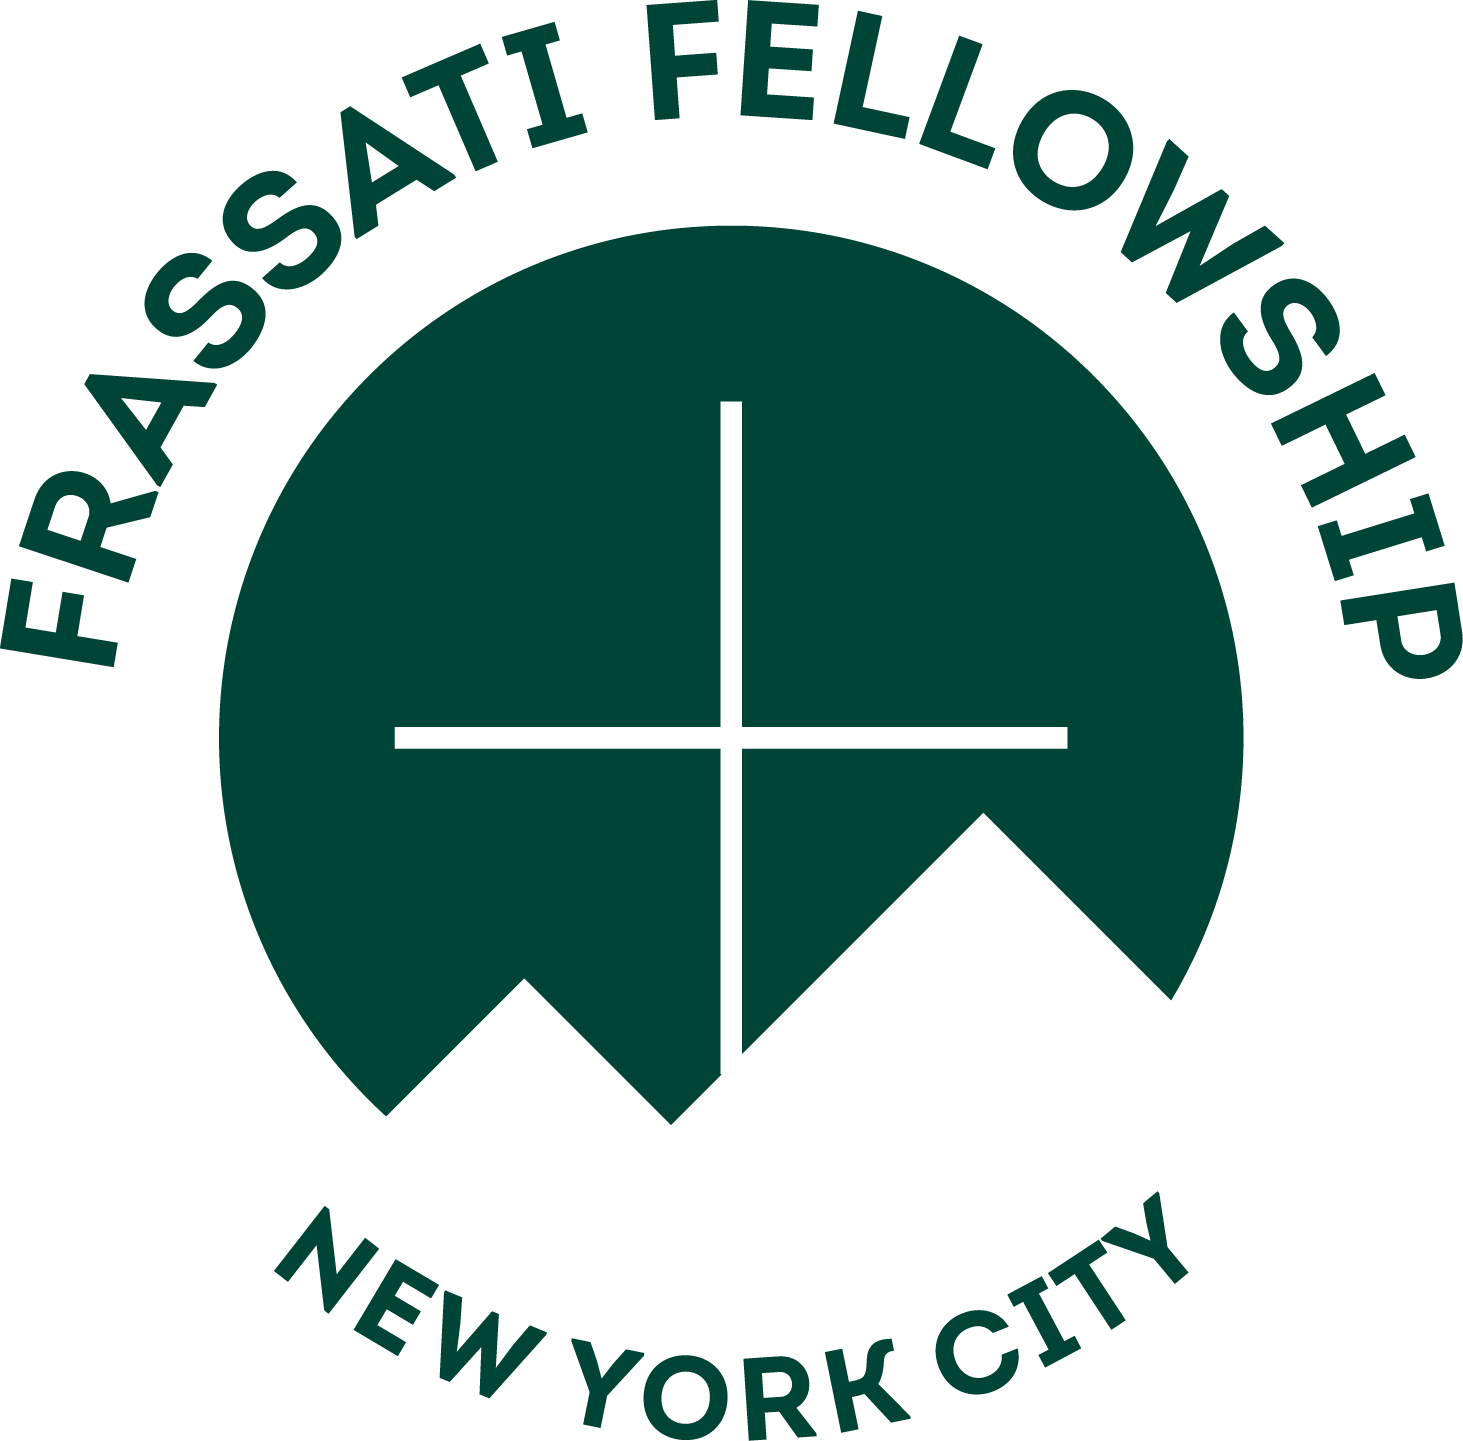 Frassati Fellowship of NYC